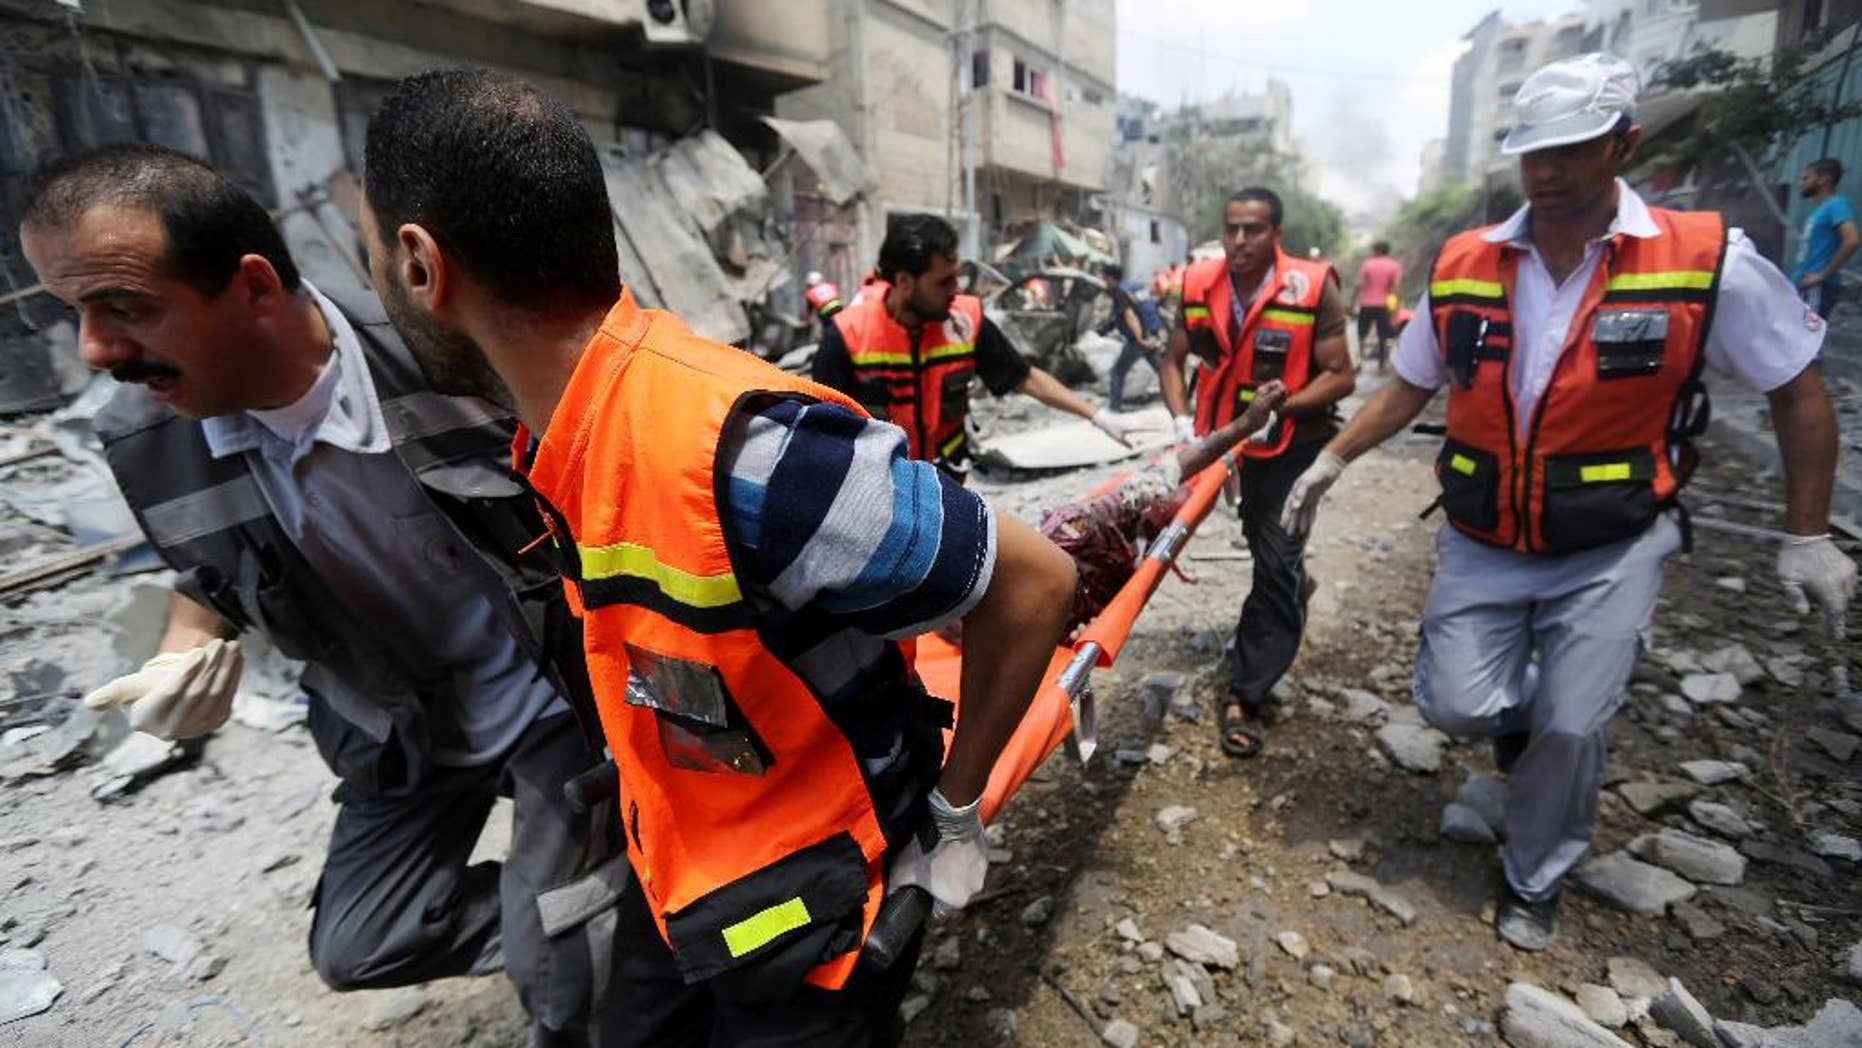 July 20, 2014: Palestinian medics carry a man injured in Gaza City's Shijaiyah neighborhood in the northern Gaza Strip of Israel.